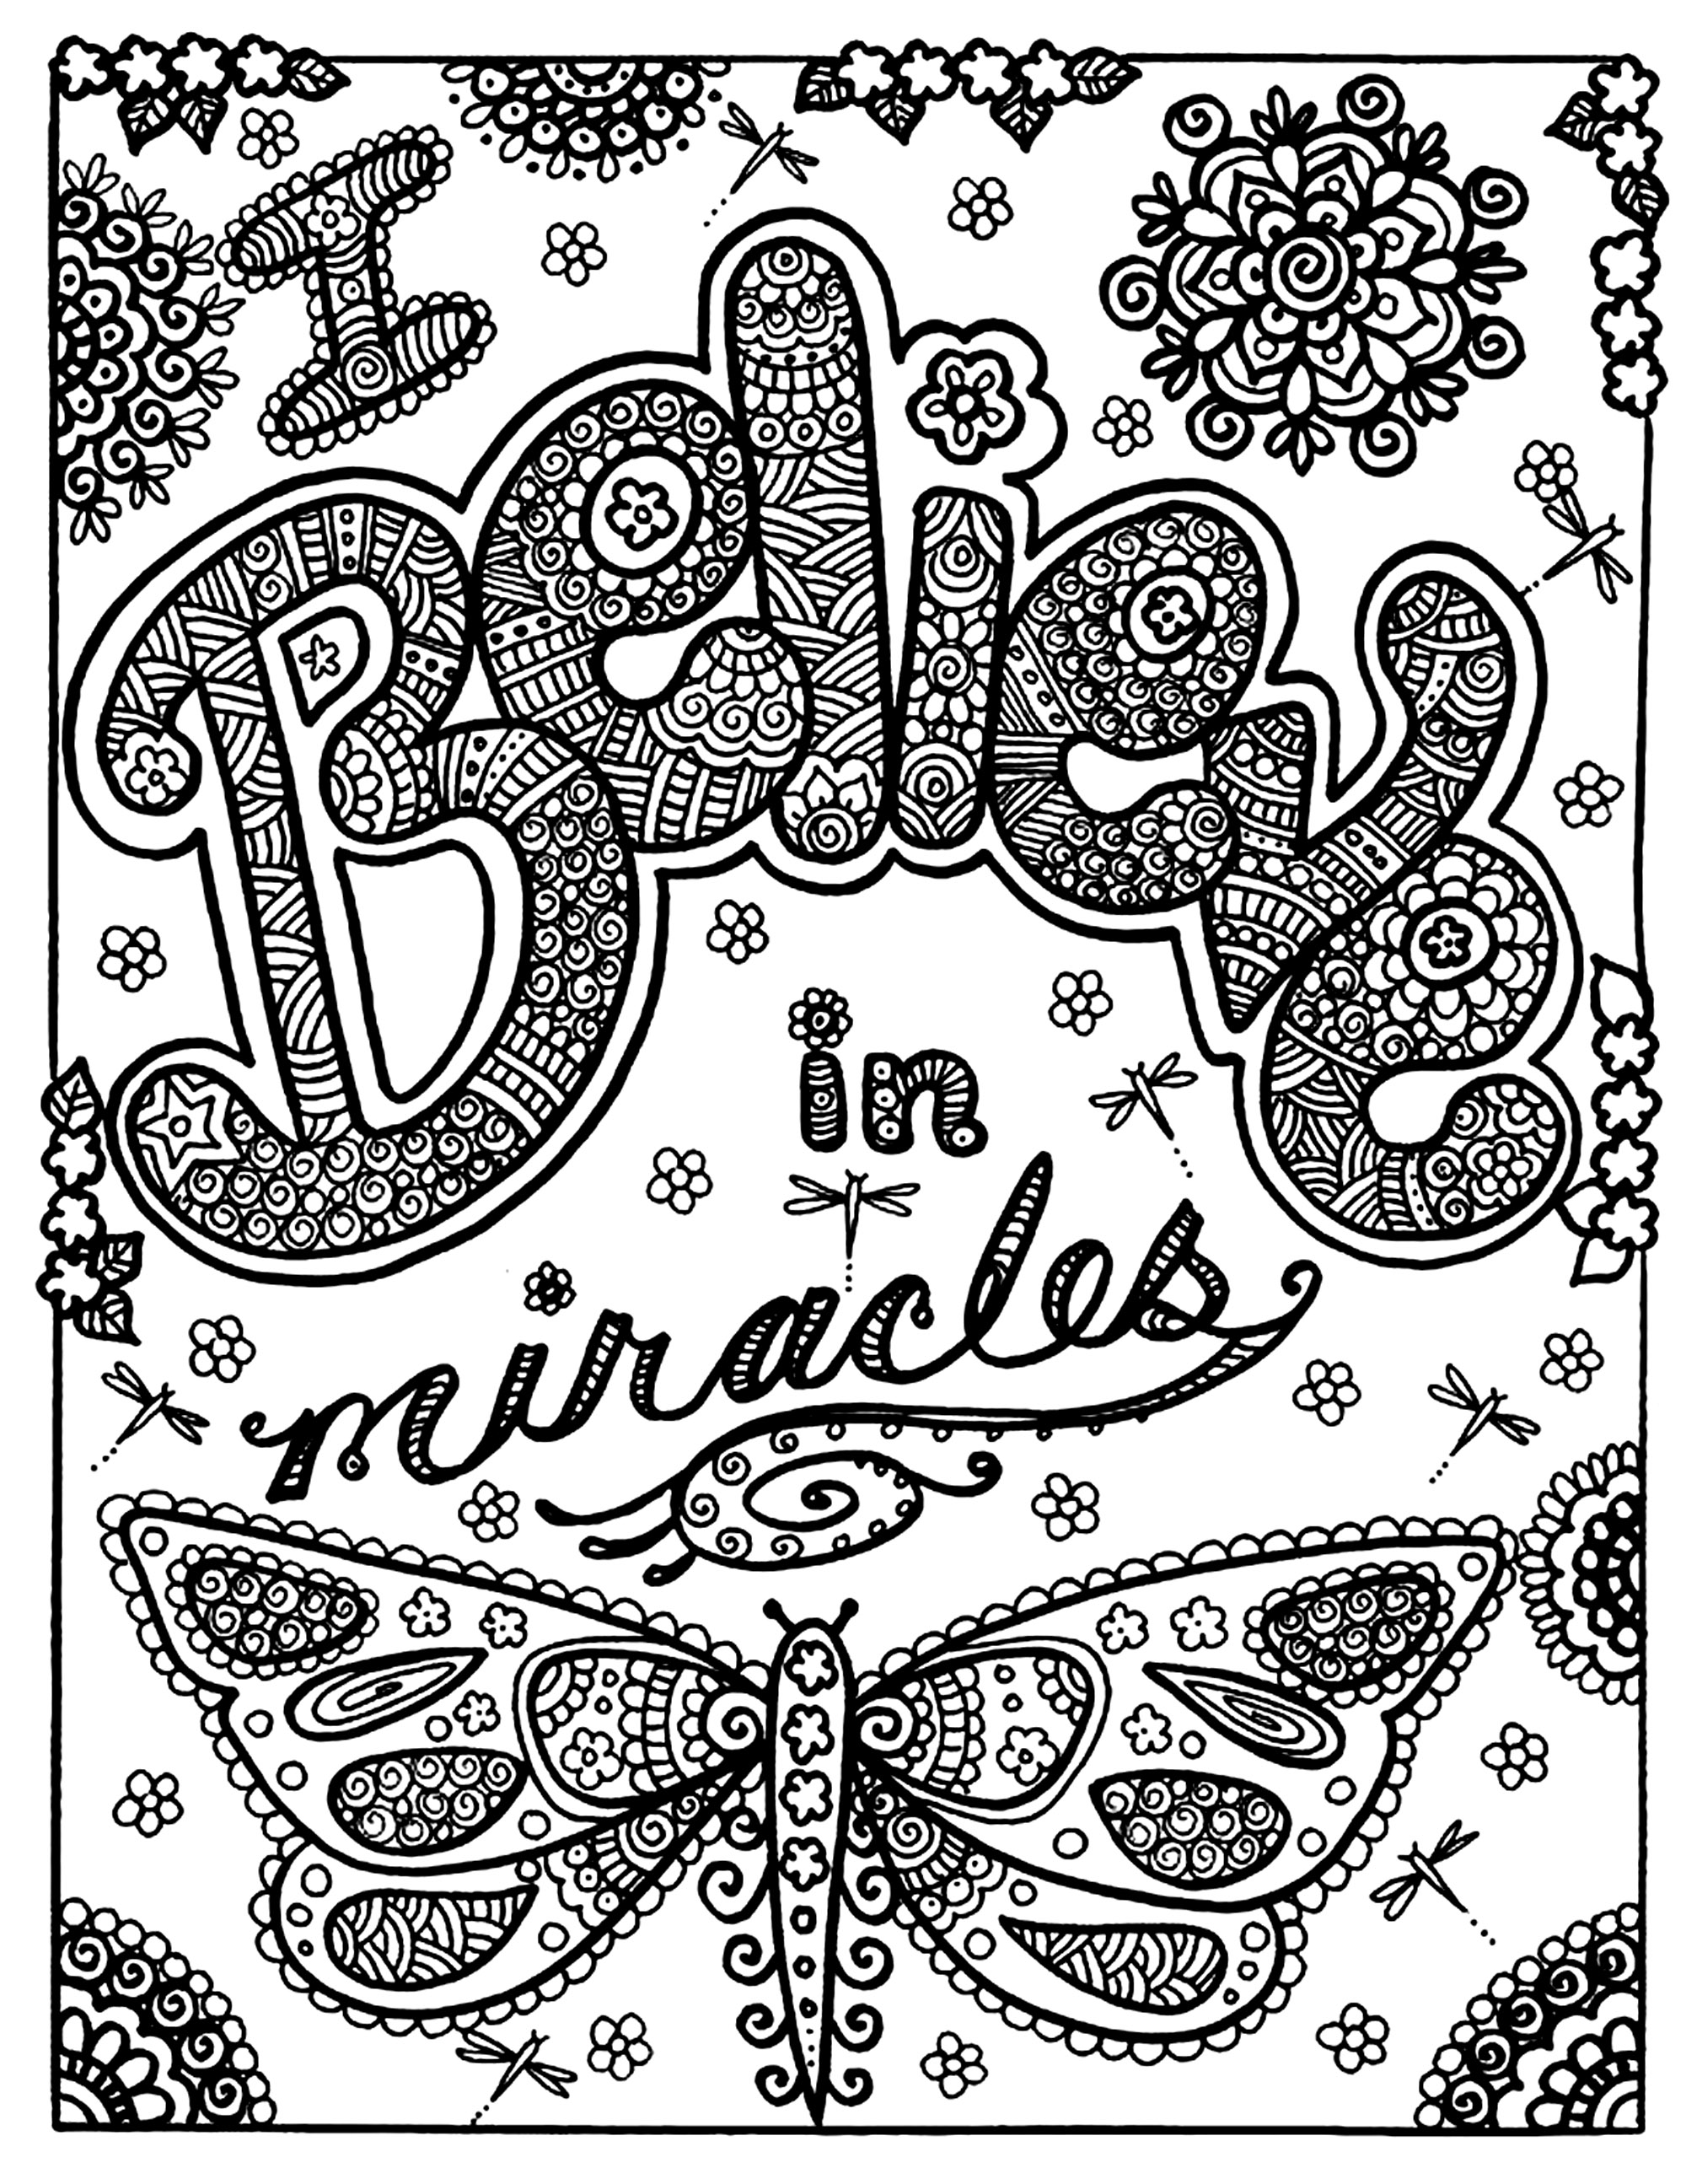 butterfly miracle insects coloring pages for adults justcolor